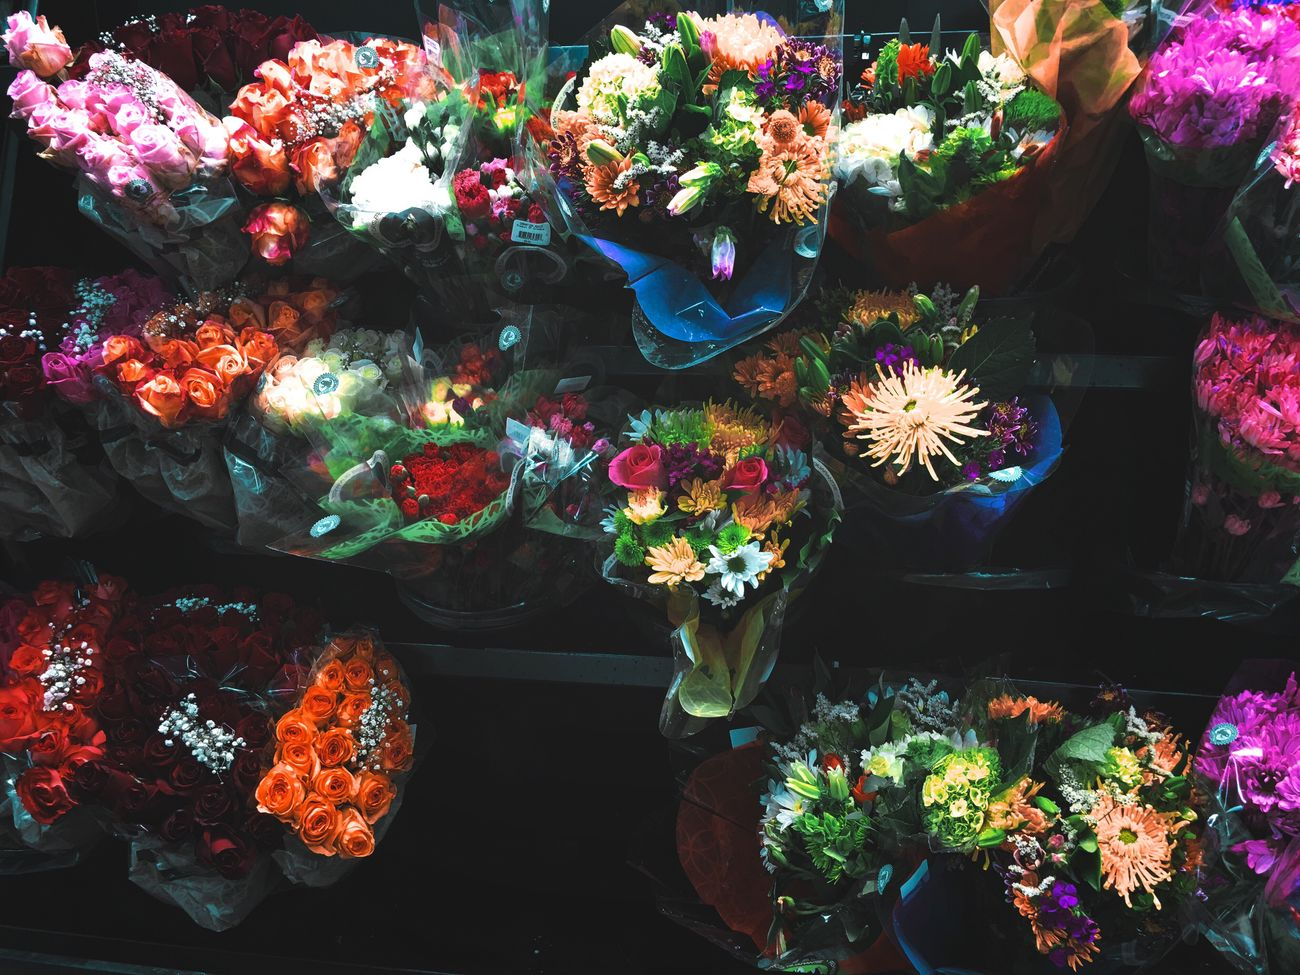 Flower Multi Colored High Angle View For Sale Beauty In Nature Flower Market Bouquet Flower Shop Freshness Choice Indoors  Nature